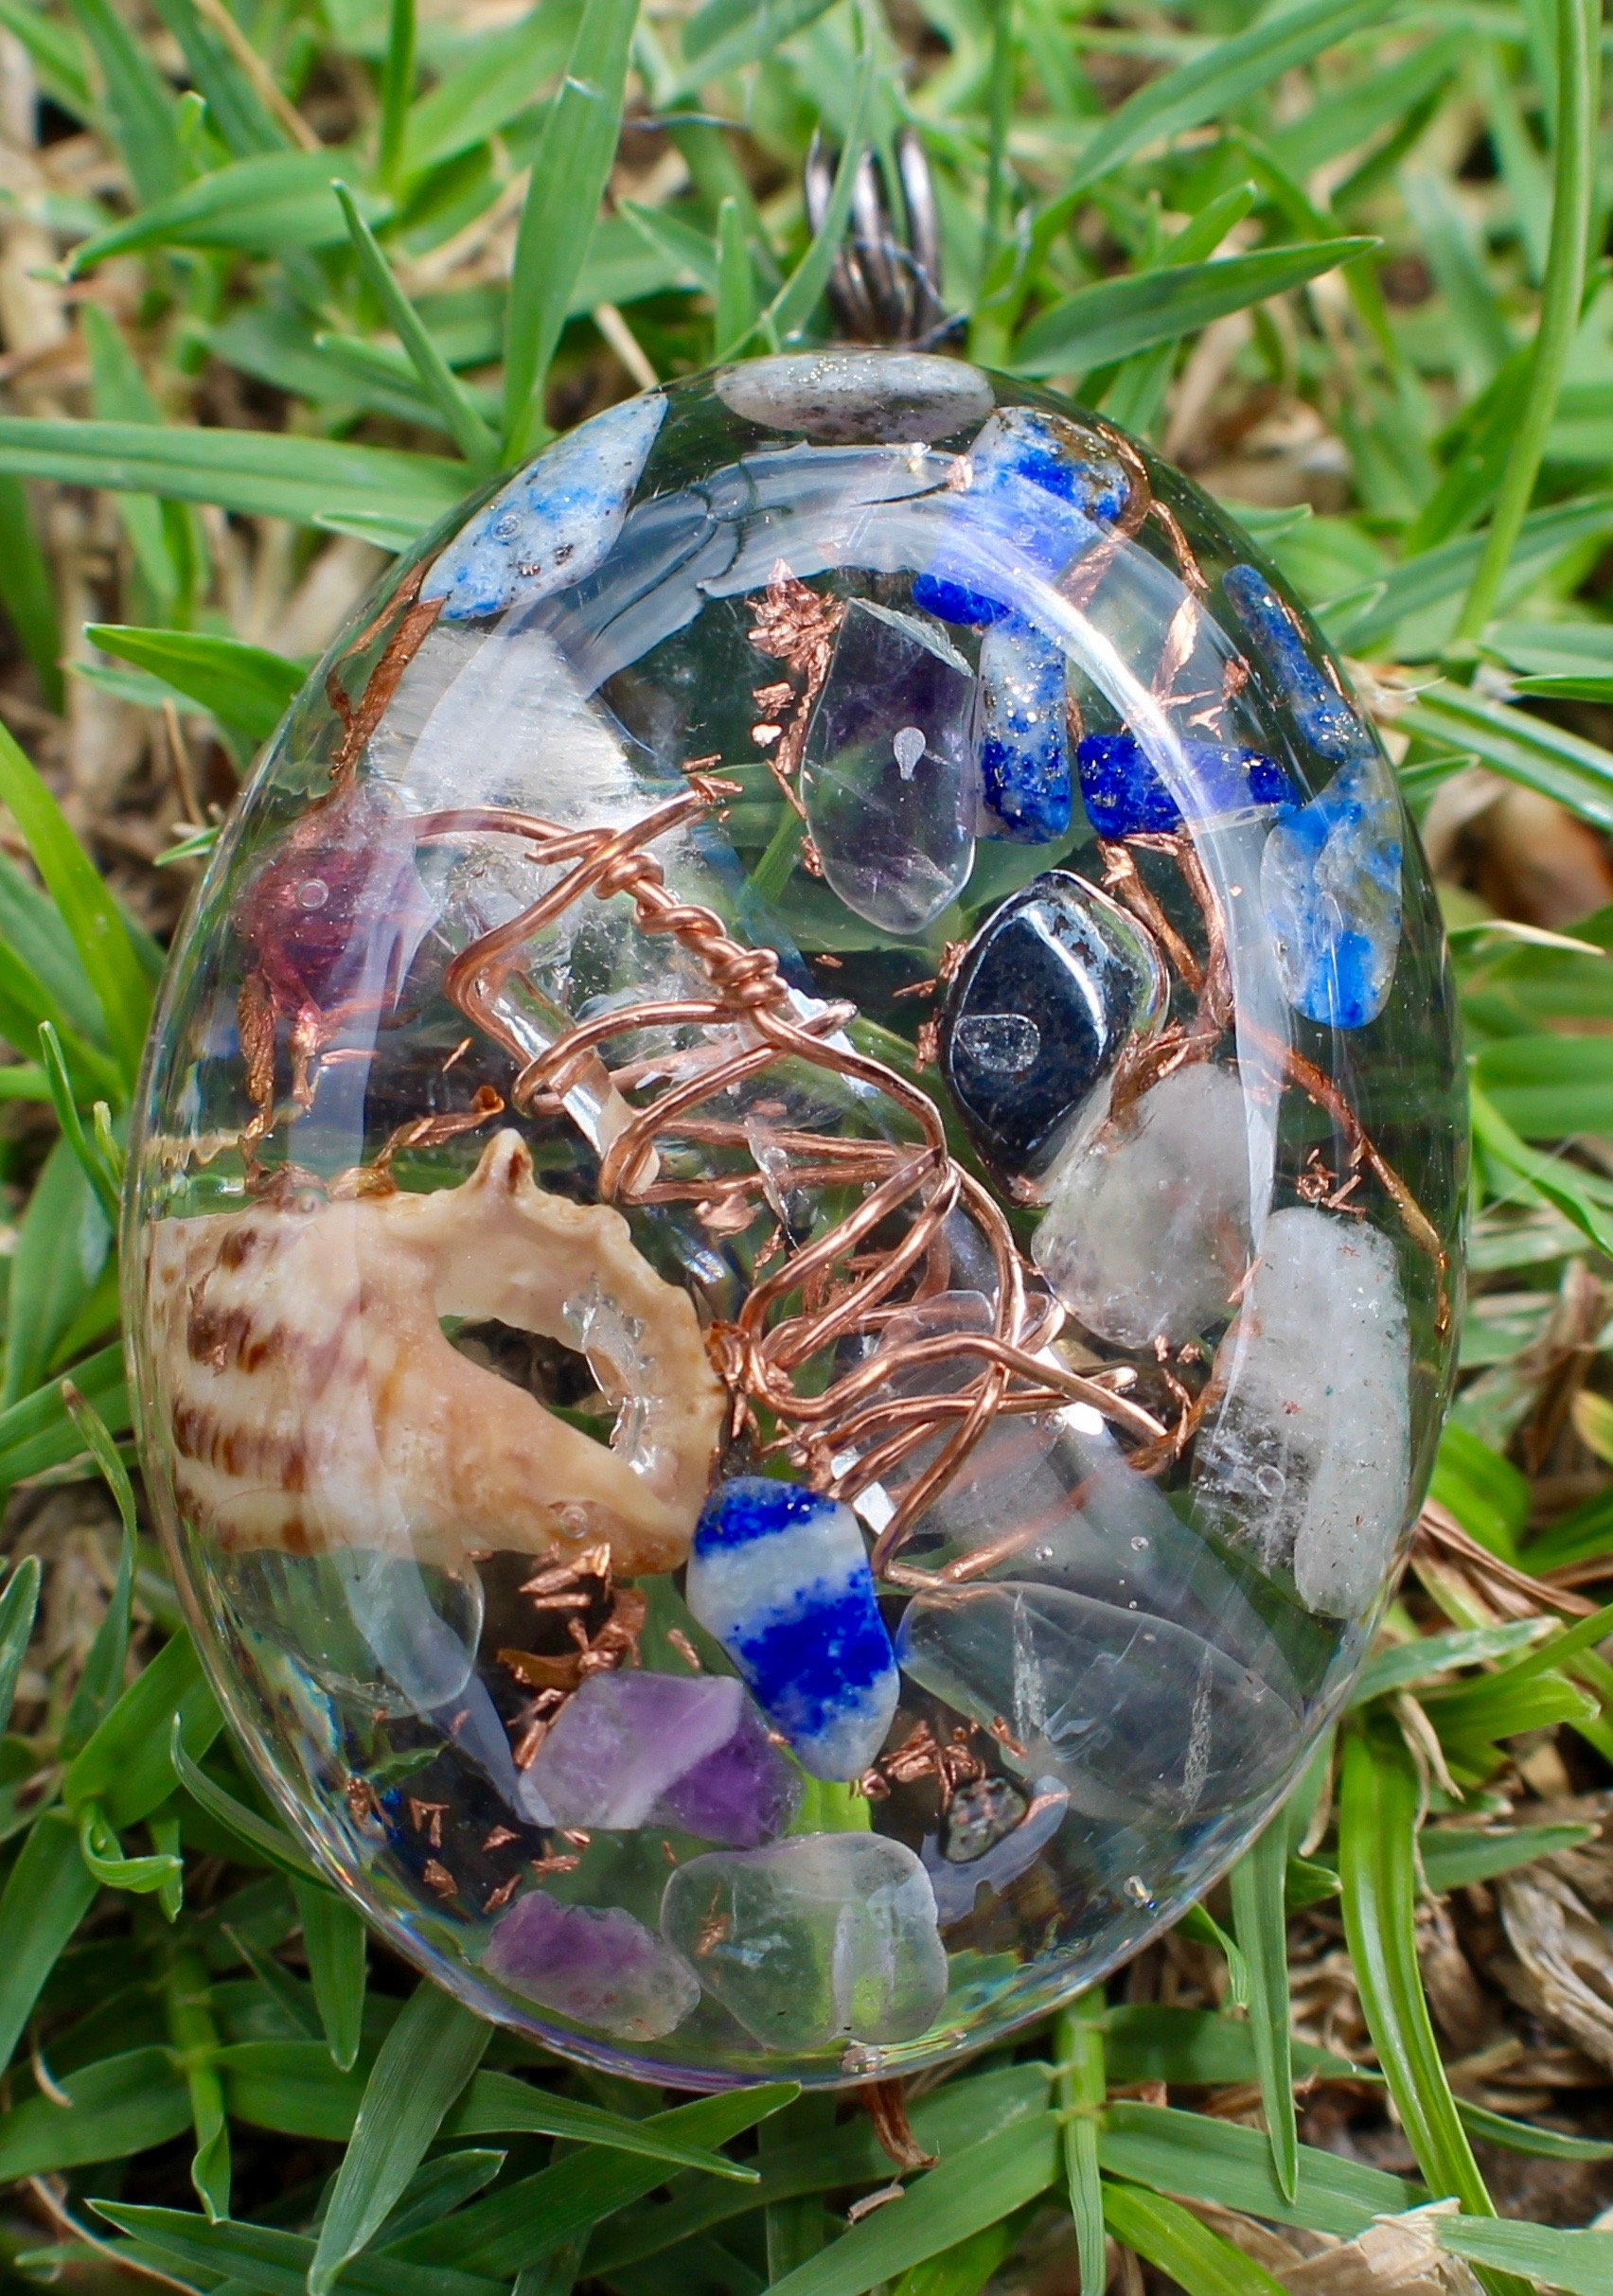 Hawaiian Healing Orgonite: Orgone Energy Pendants for Headaches and Migraines with Hematite, Lapis Lazuli, Aquamarine and Amethyst (Lg Oval)